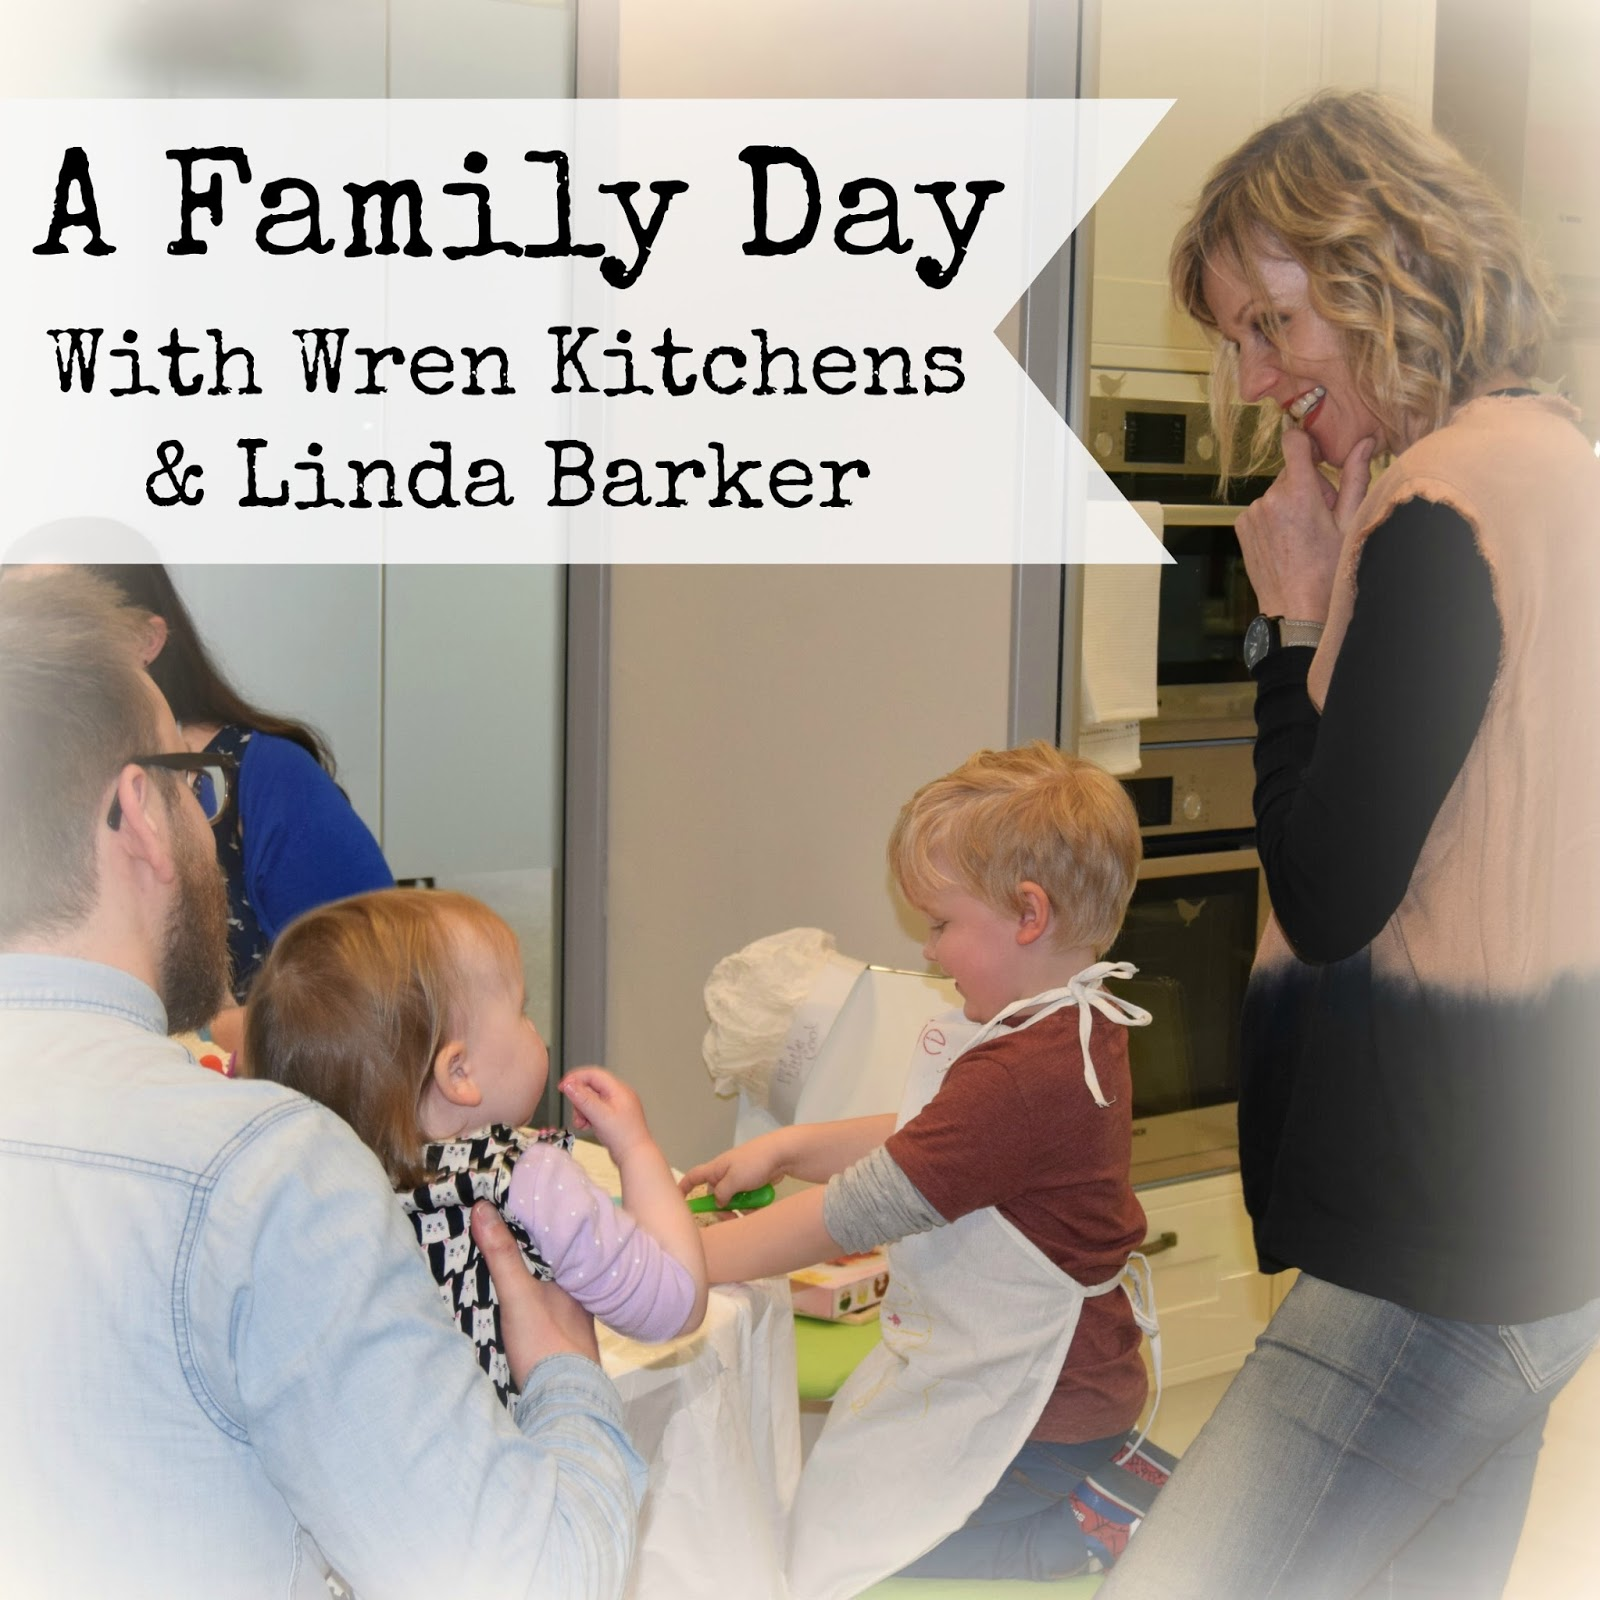 Wafflemama Our Family Day With Wren Kitchens Linda Barker